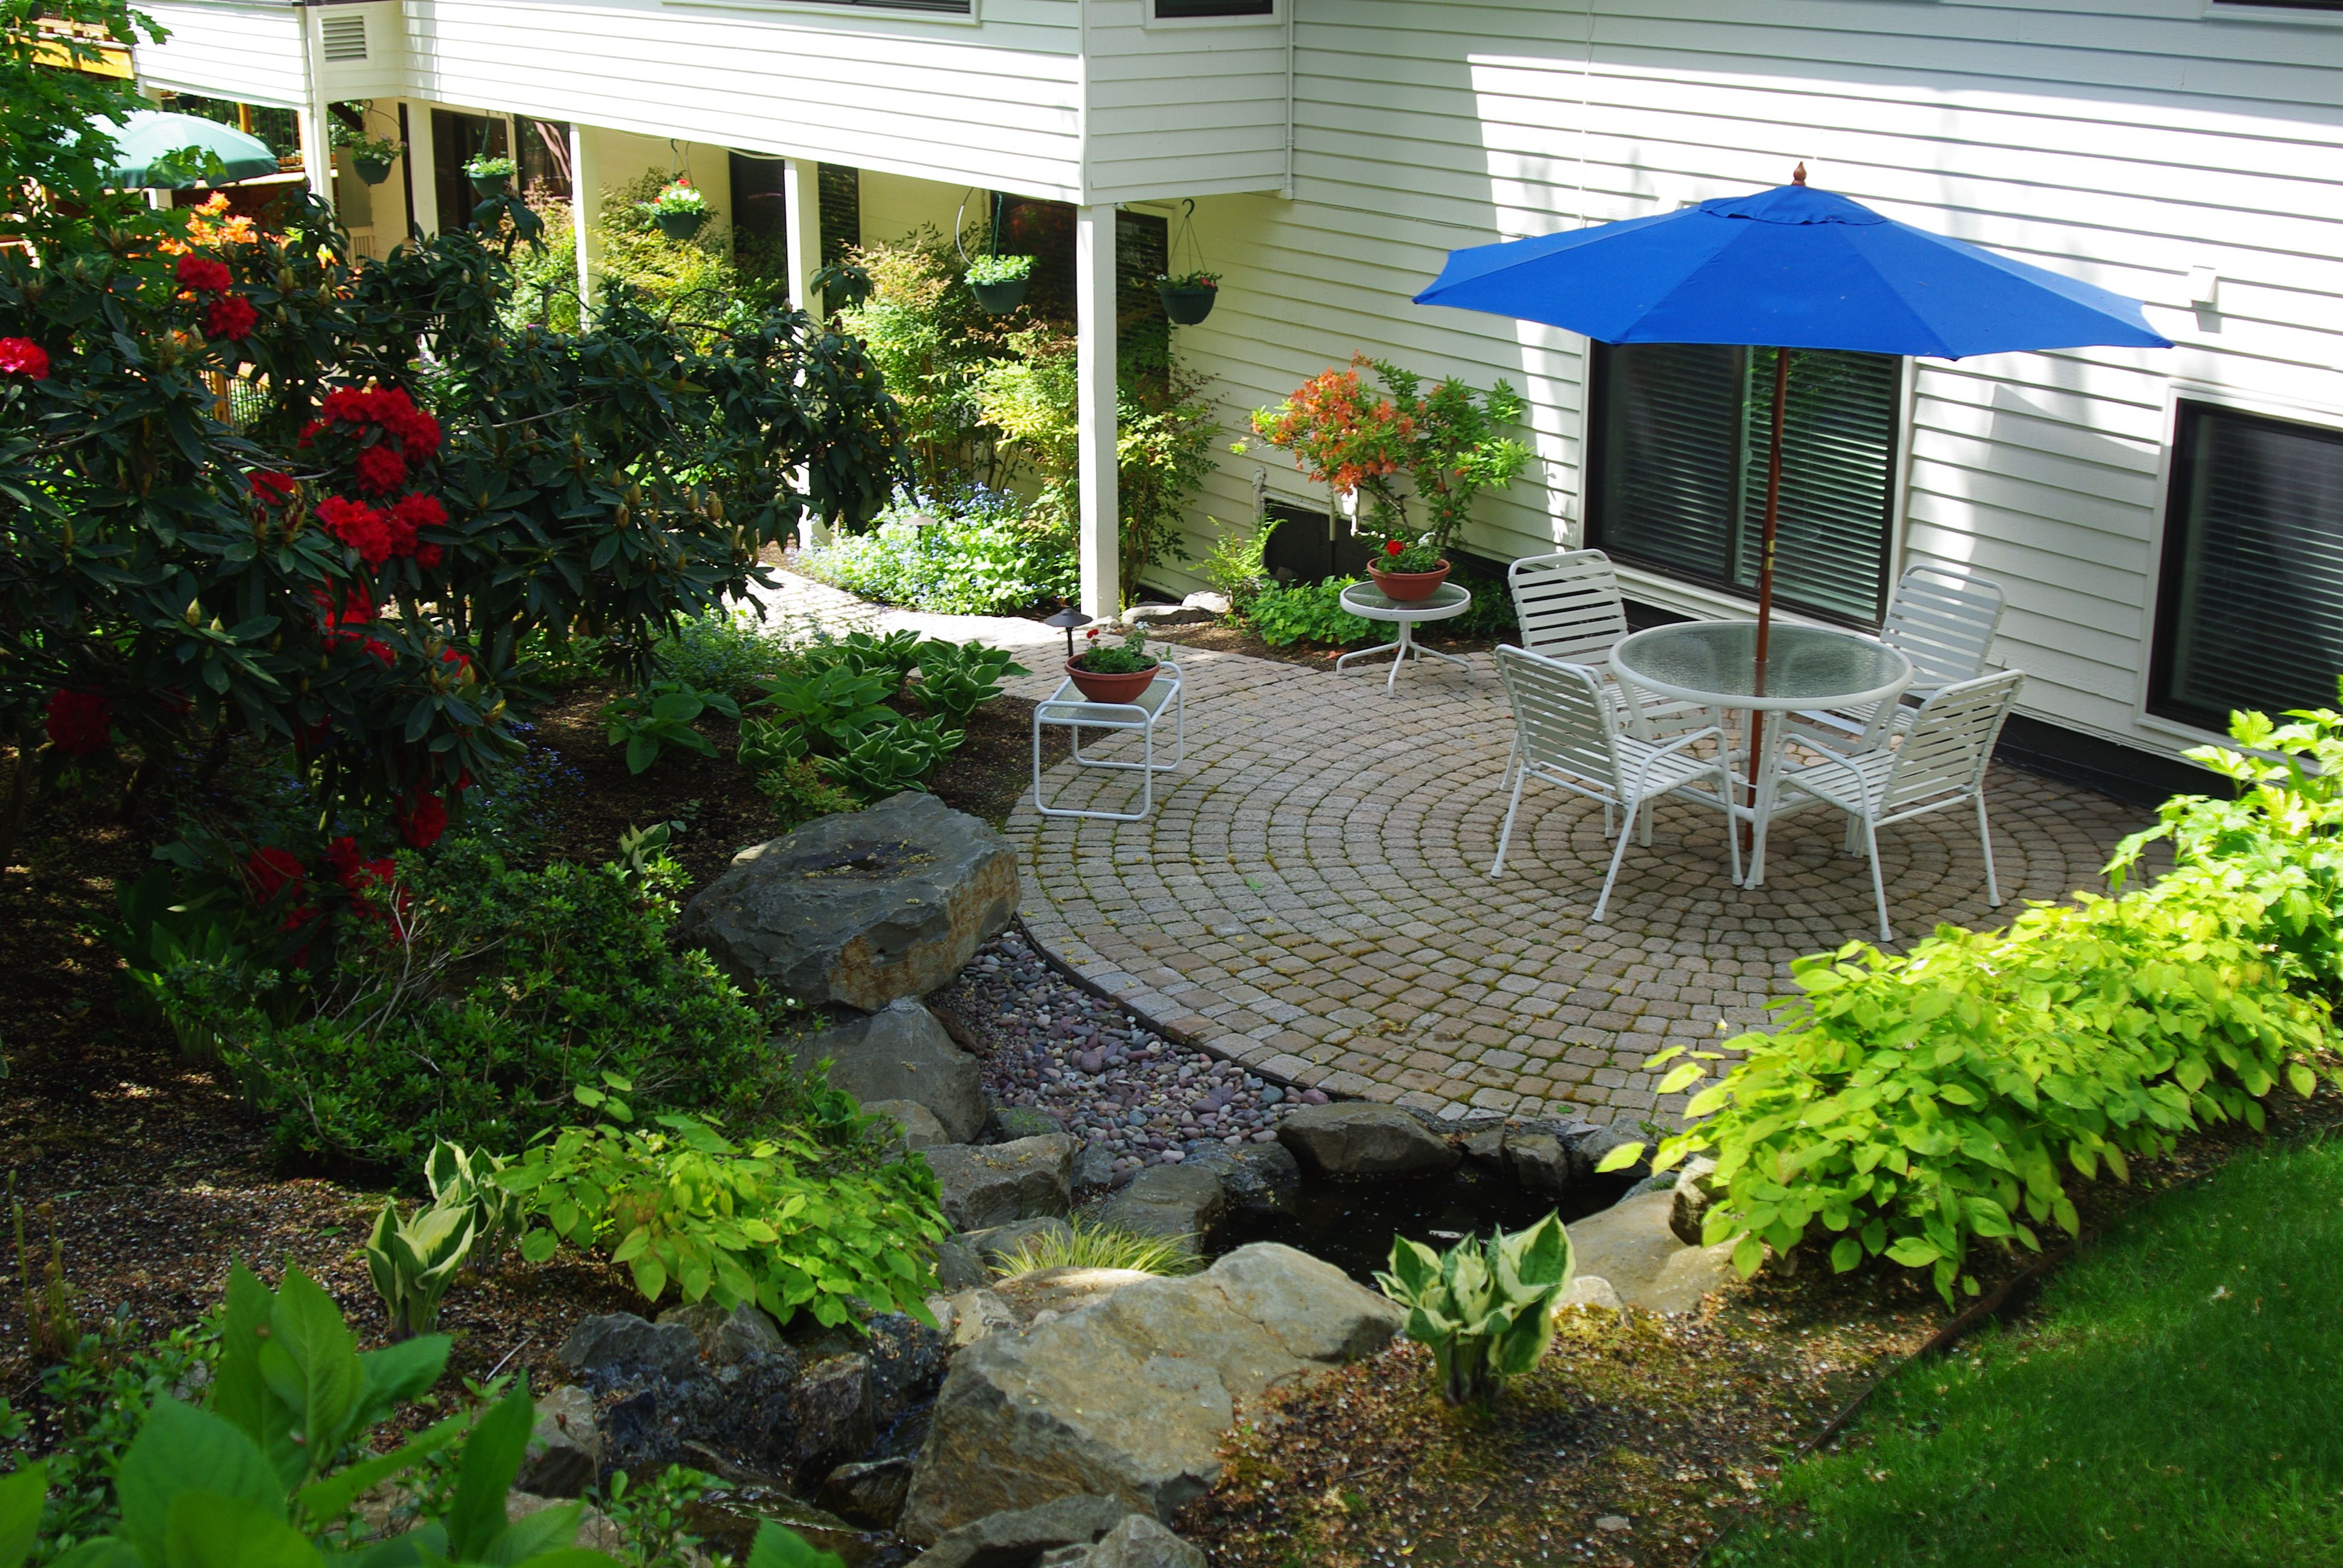 Outdoor Living : Landscaping : Small Patio Idea With Round Glass Table And  White Garden Chair